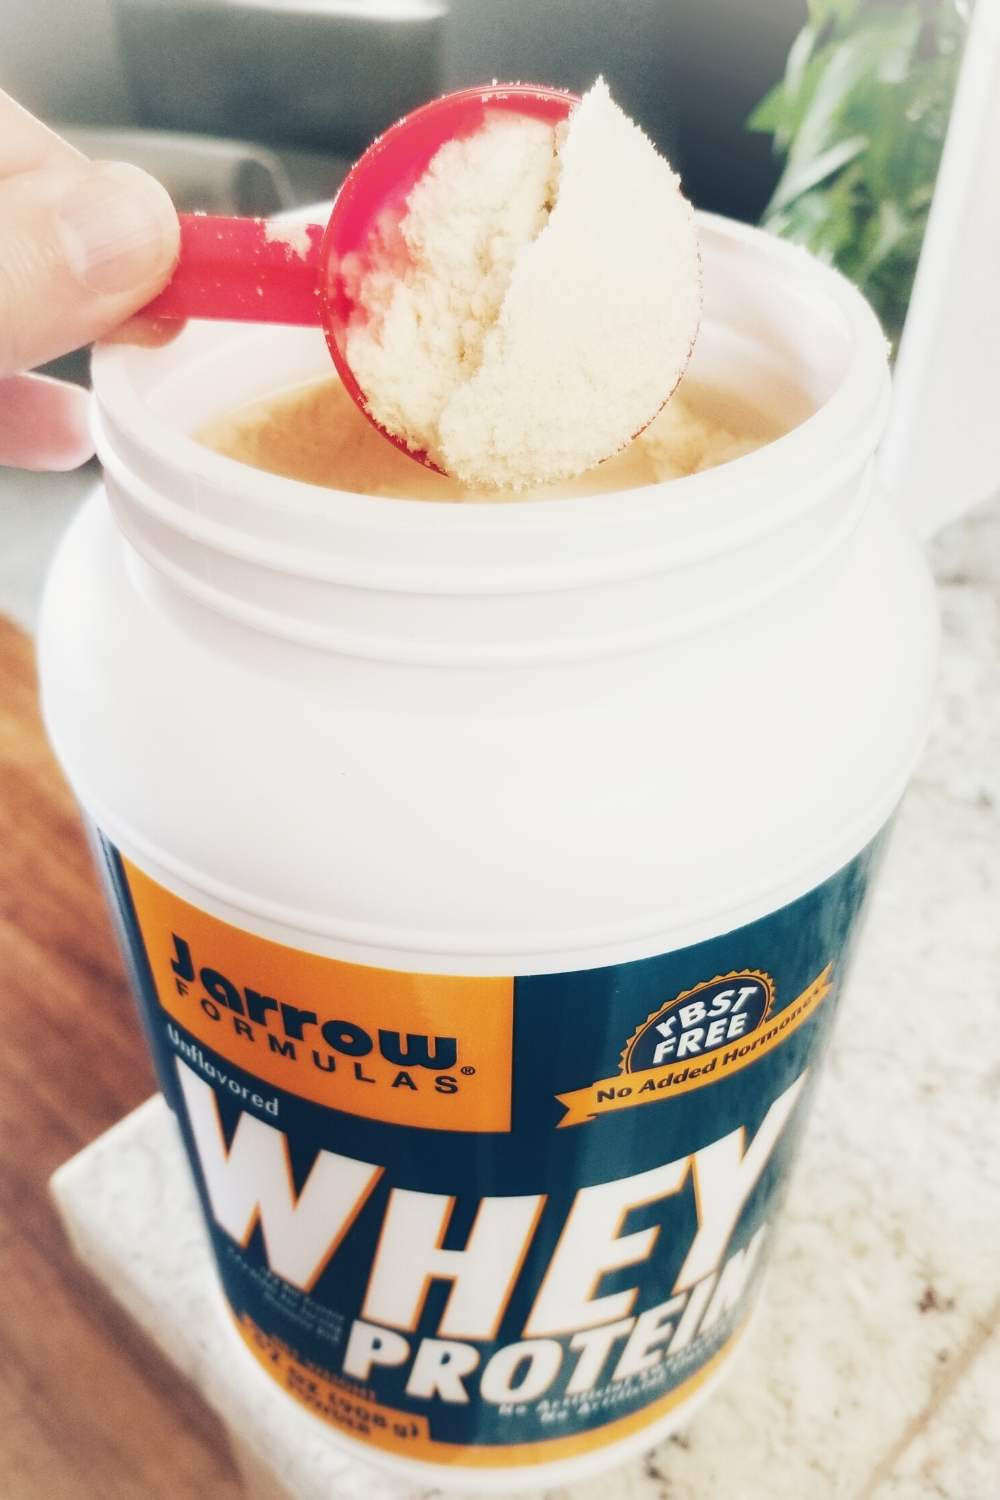 If you need extra protein in your Superfood Smoothie Recipe, consider an unsweetened and unflavored whey protein powder so you control the flavoring of your smoothie